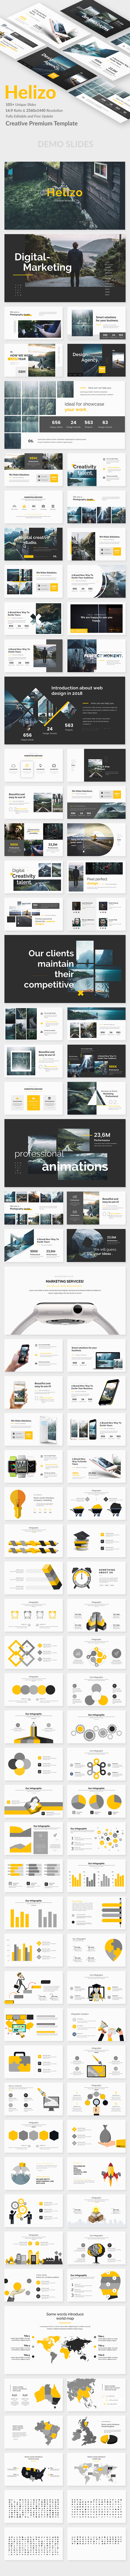 Helizo Premium Creative Design Google Slide Template - Google Slides Presentation Templates